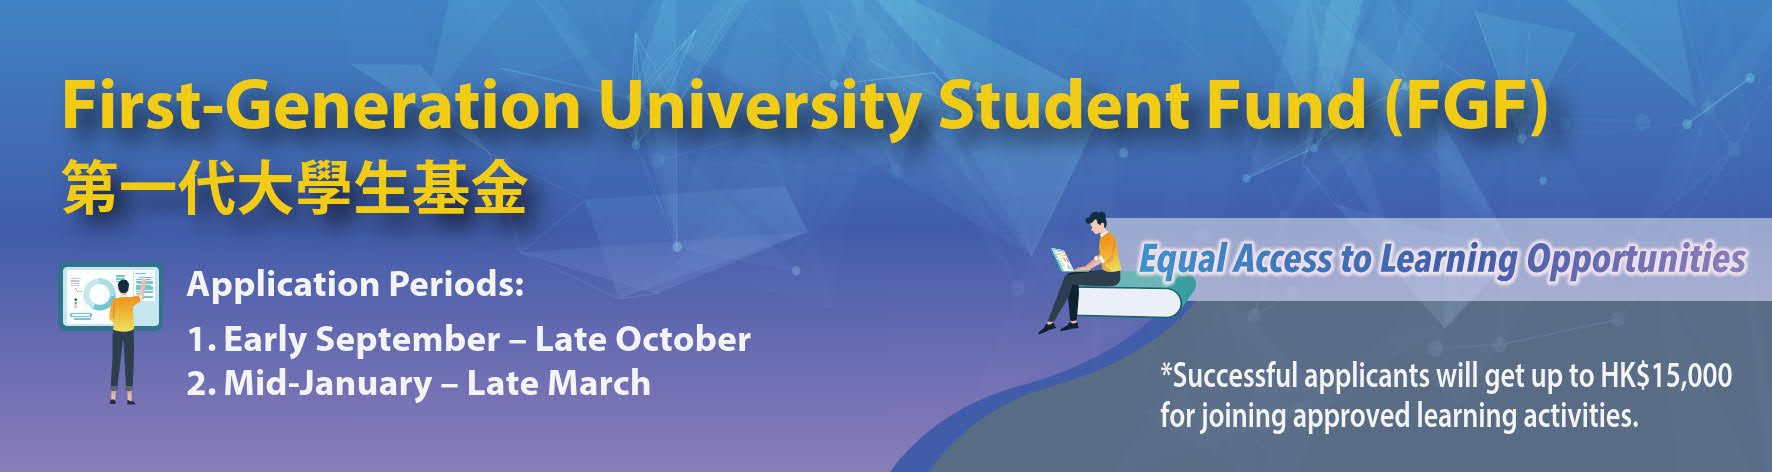 Banner of First-Generation University Student Fund